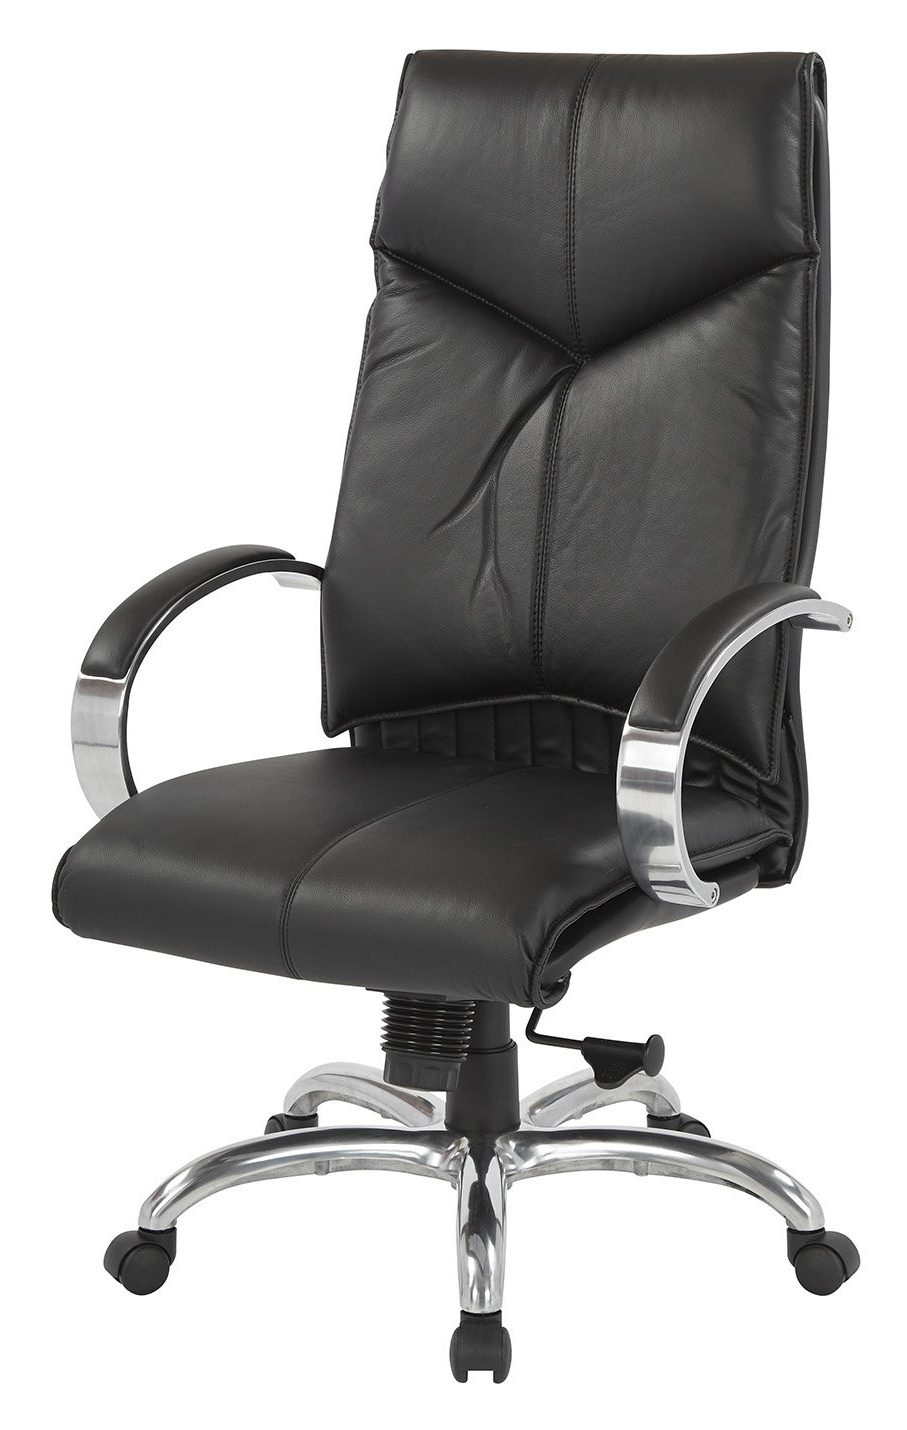 Top Grain Black Leather High Back Swivel Chair With Chrome Base Intended For Favorite Leather Black Swivel Chairs (Gallery 10 of 20)